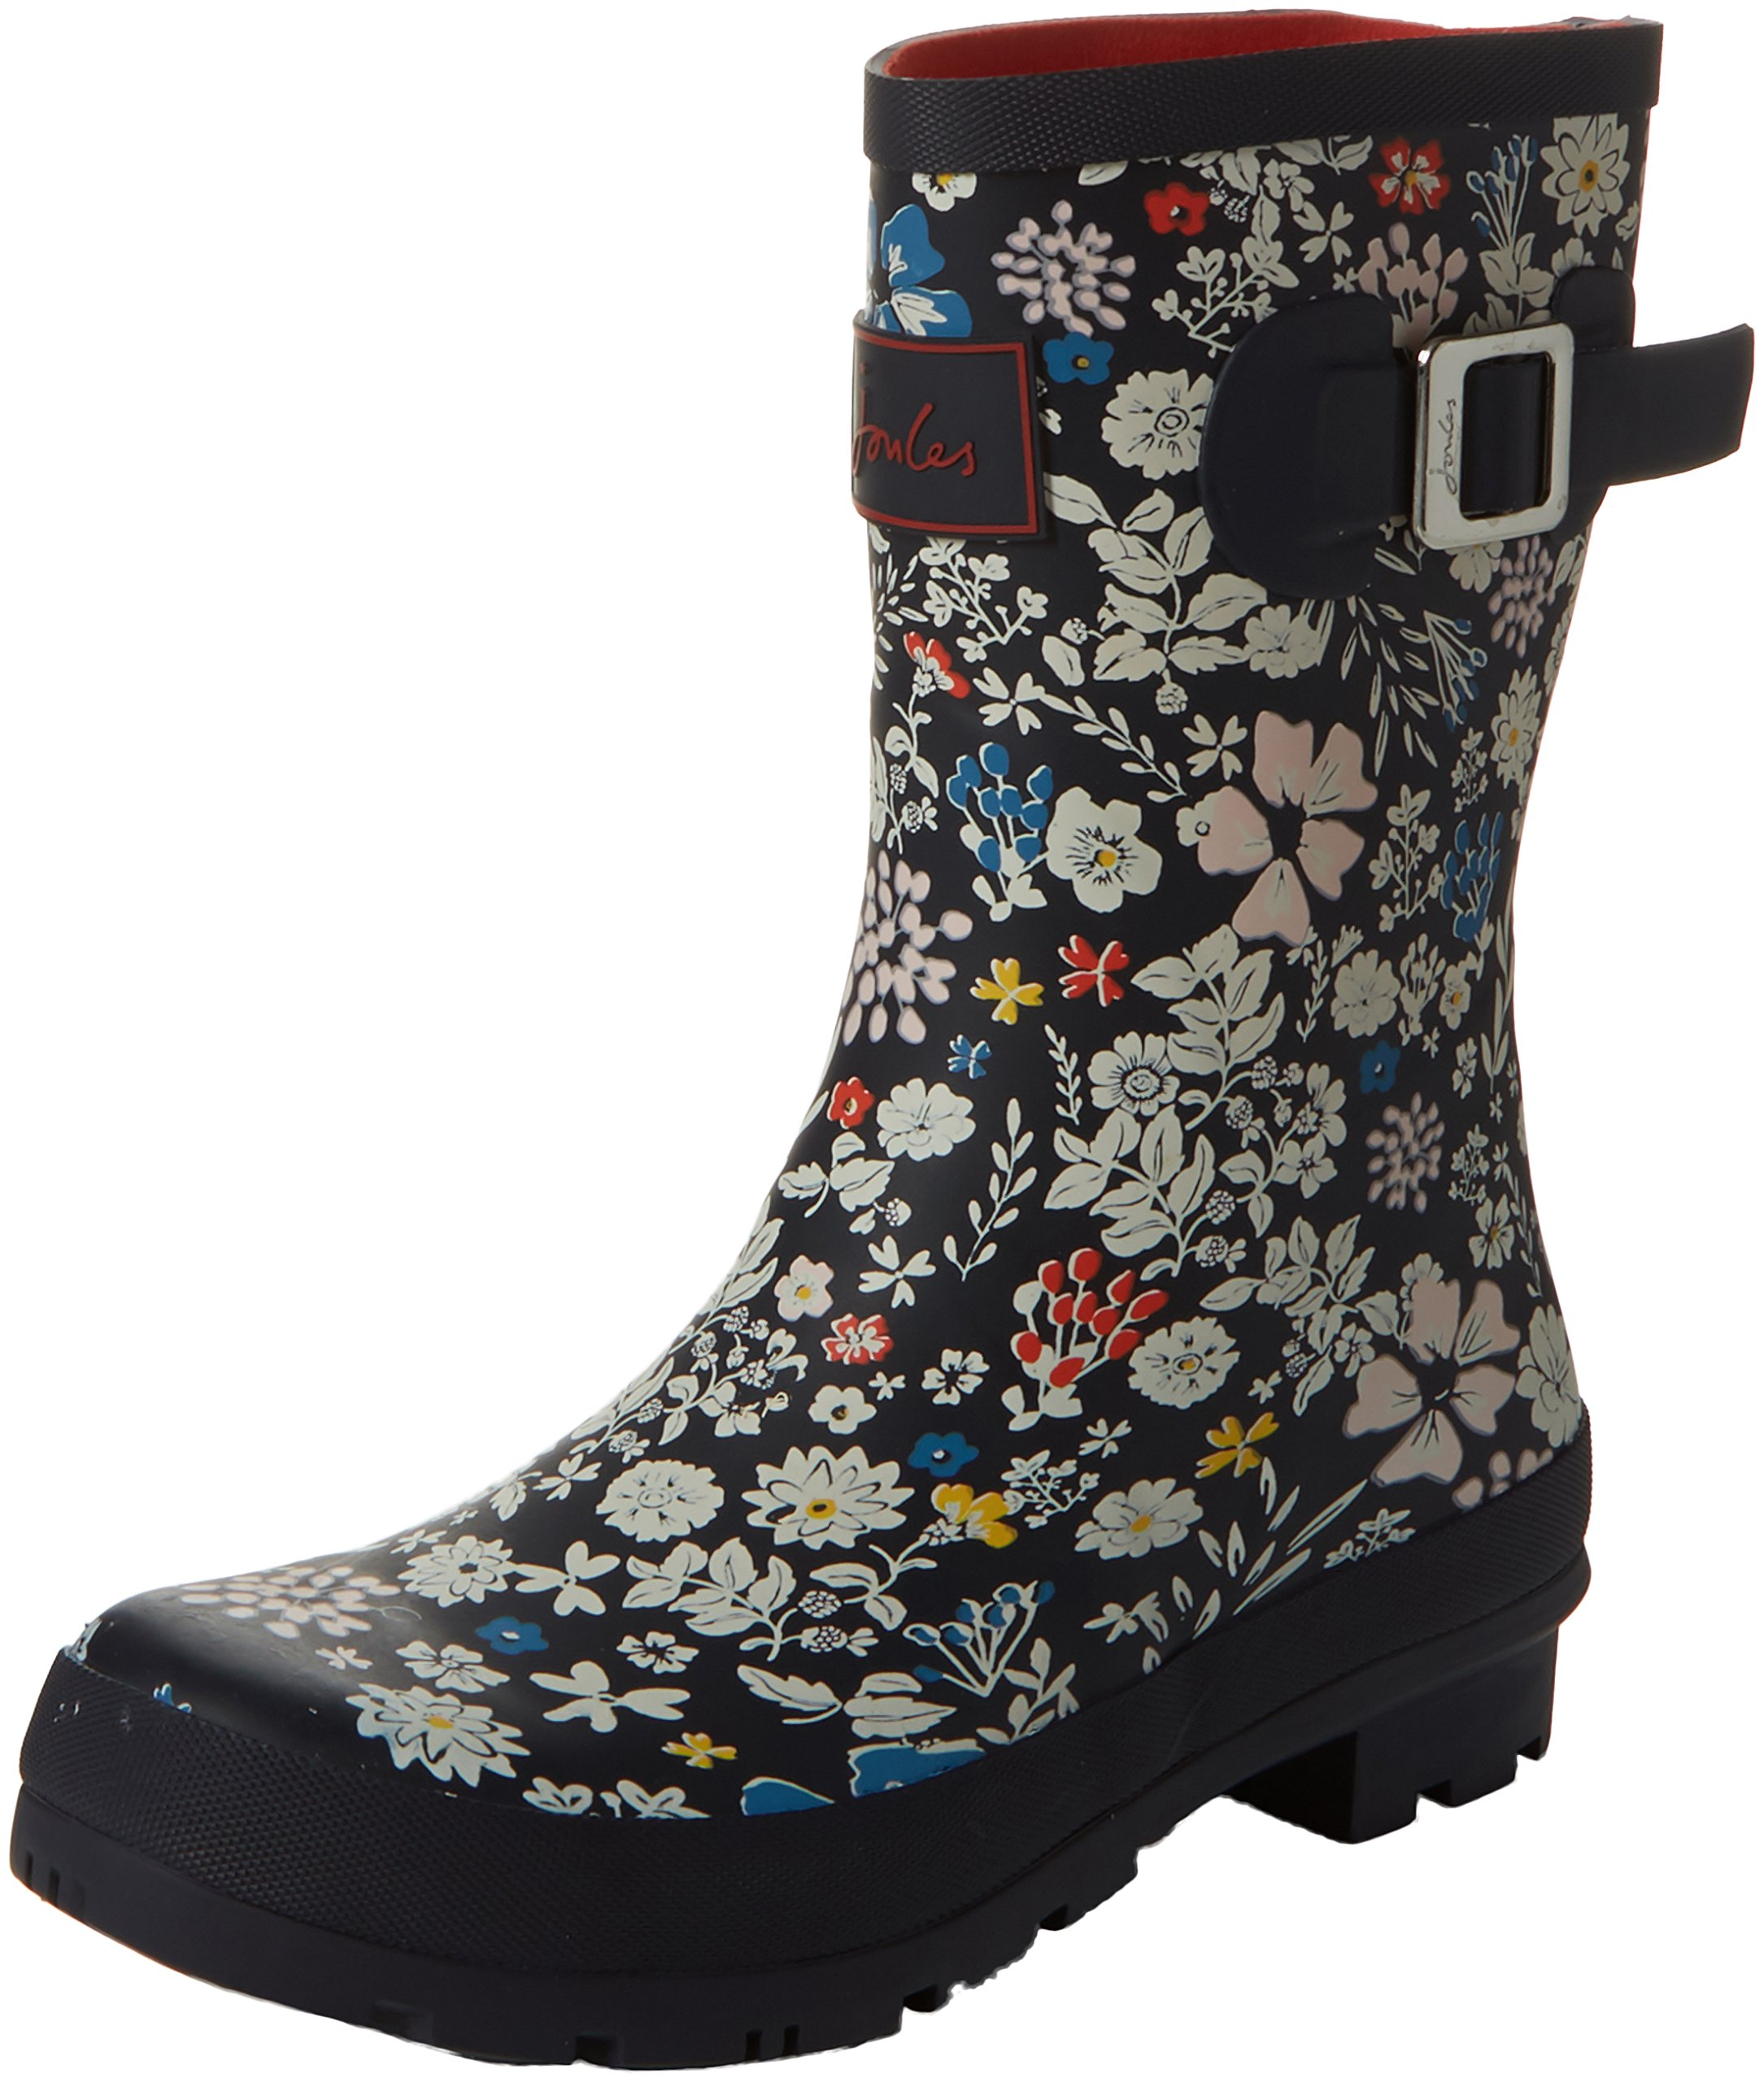 Joules Women's Molly Welly Rain Boot French Navy Ria Ditsy 5 M US